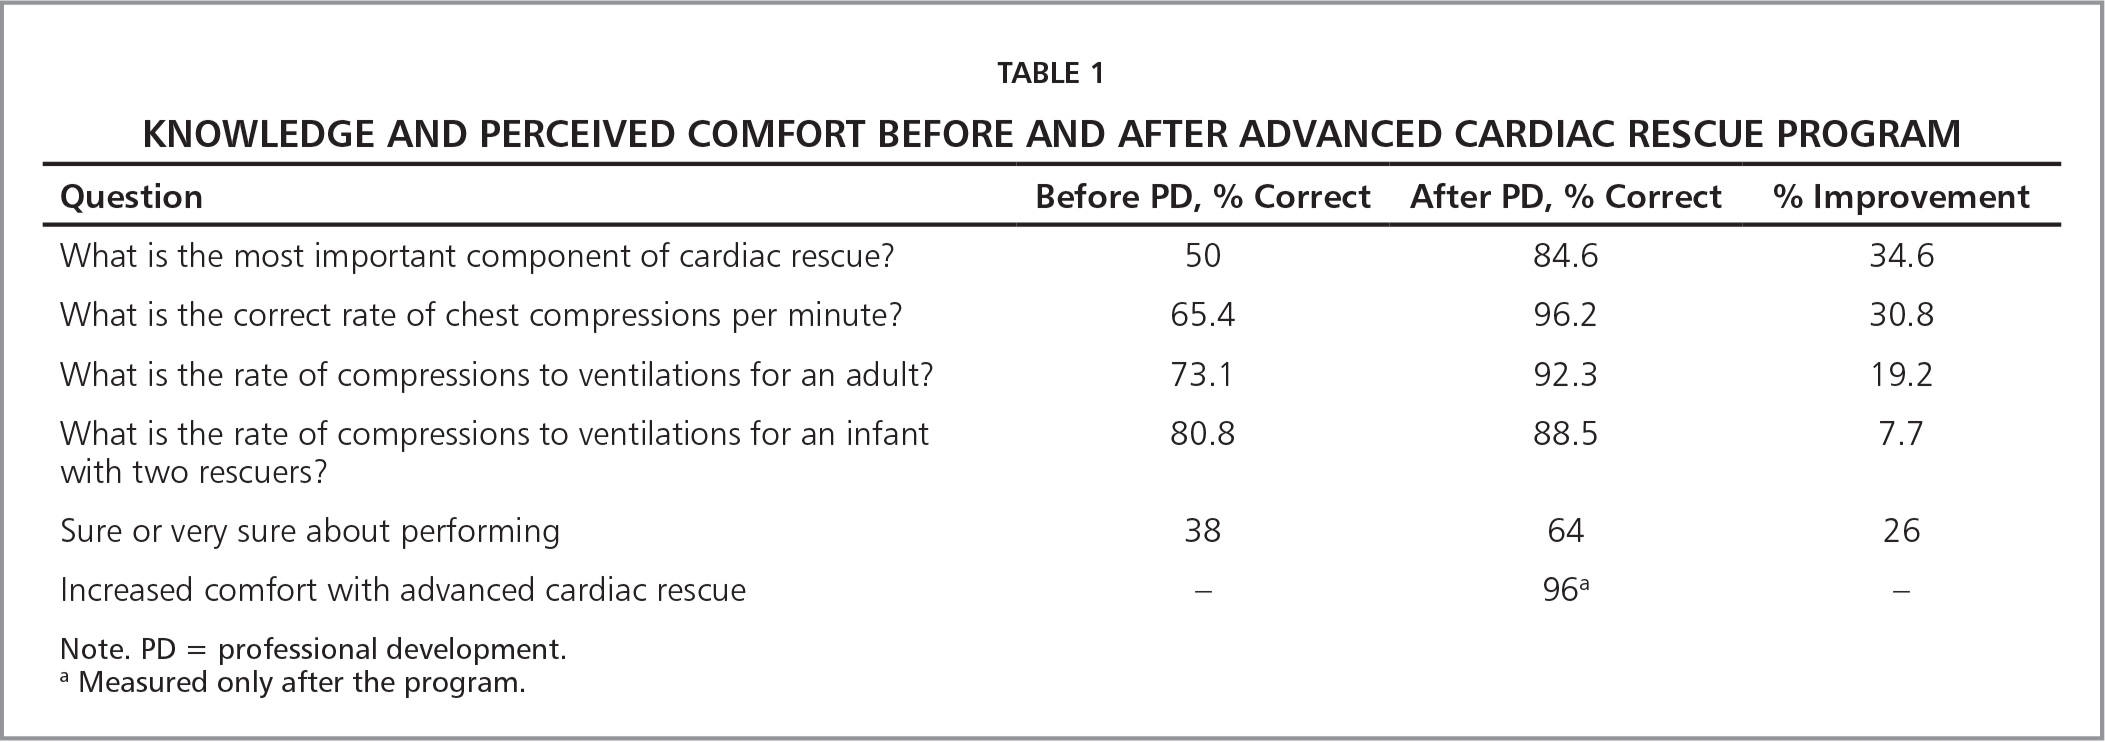 Knowledge and Perceived Comfort Before and After Advanced Cardiac Rescue Program